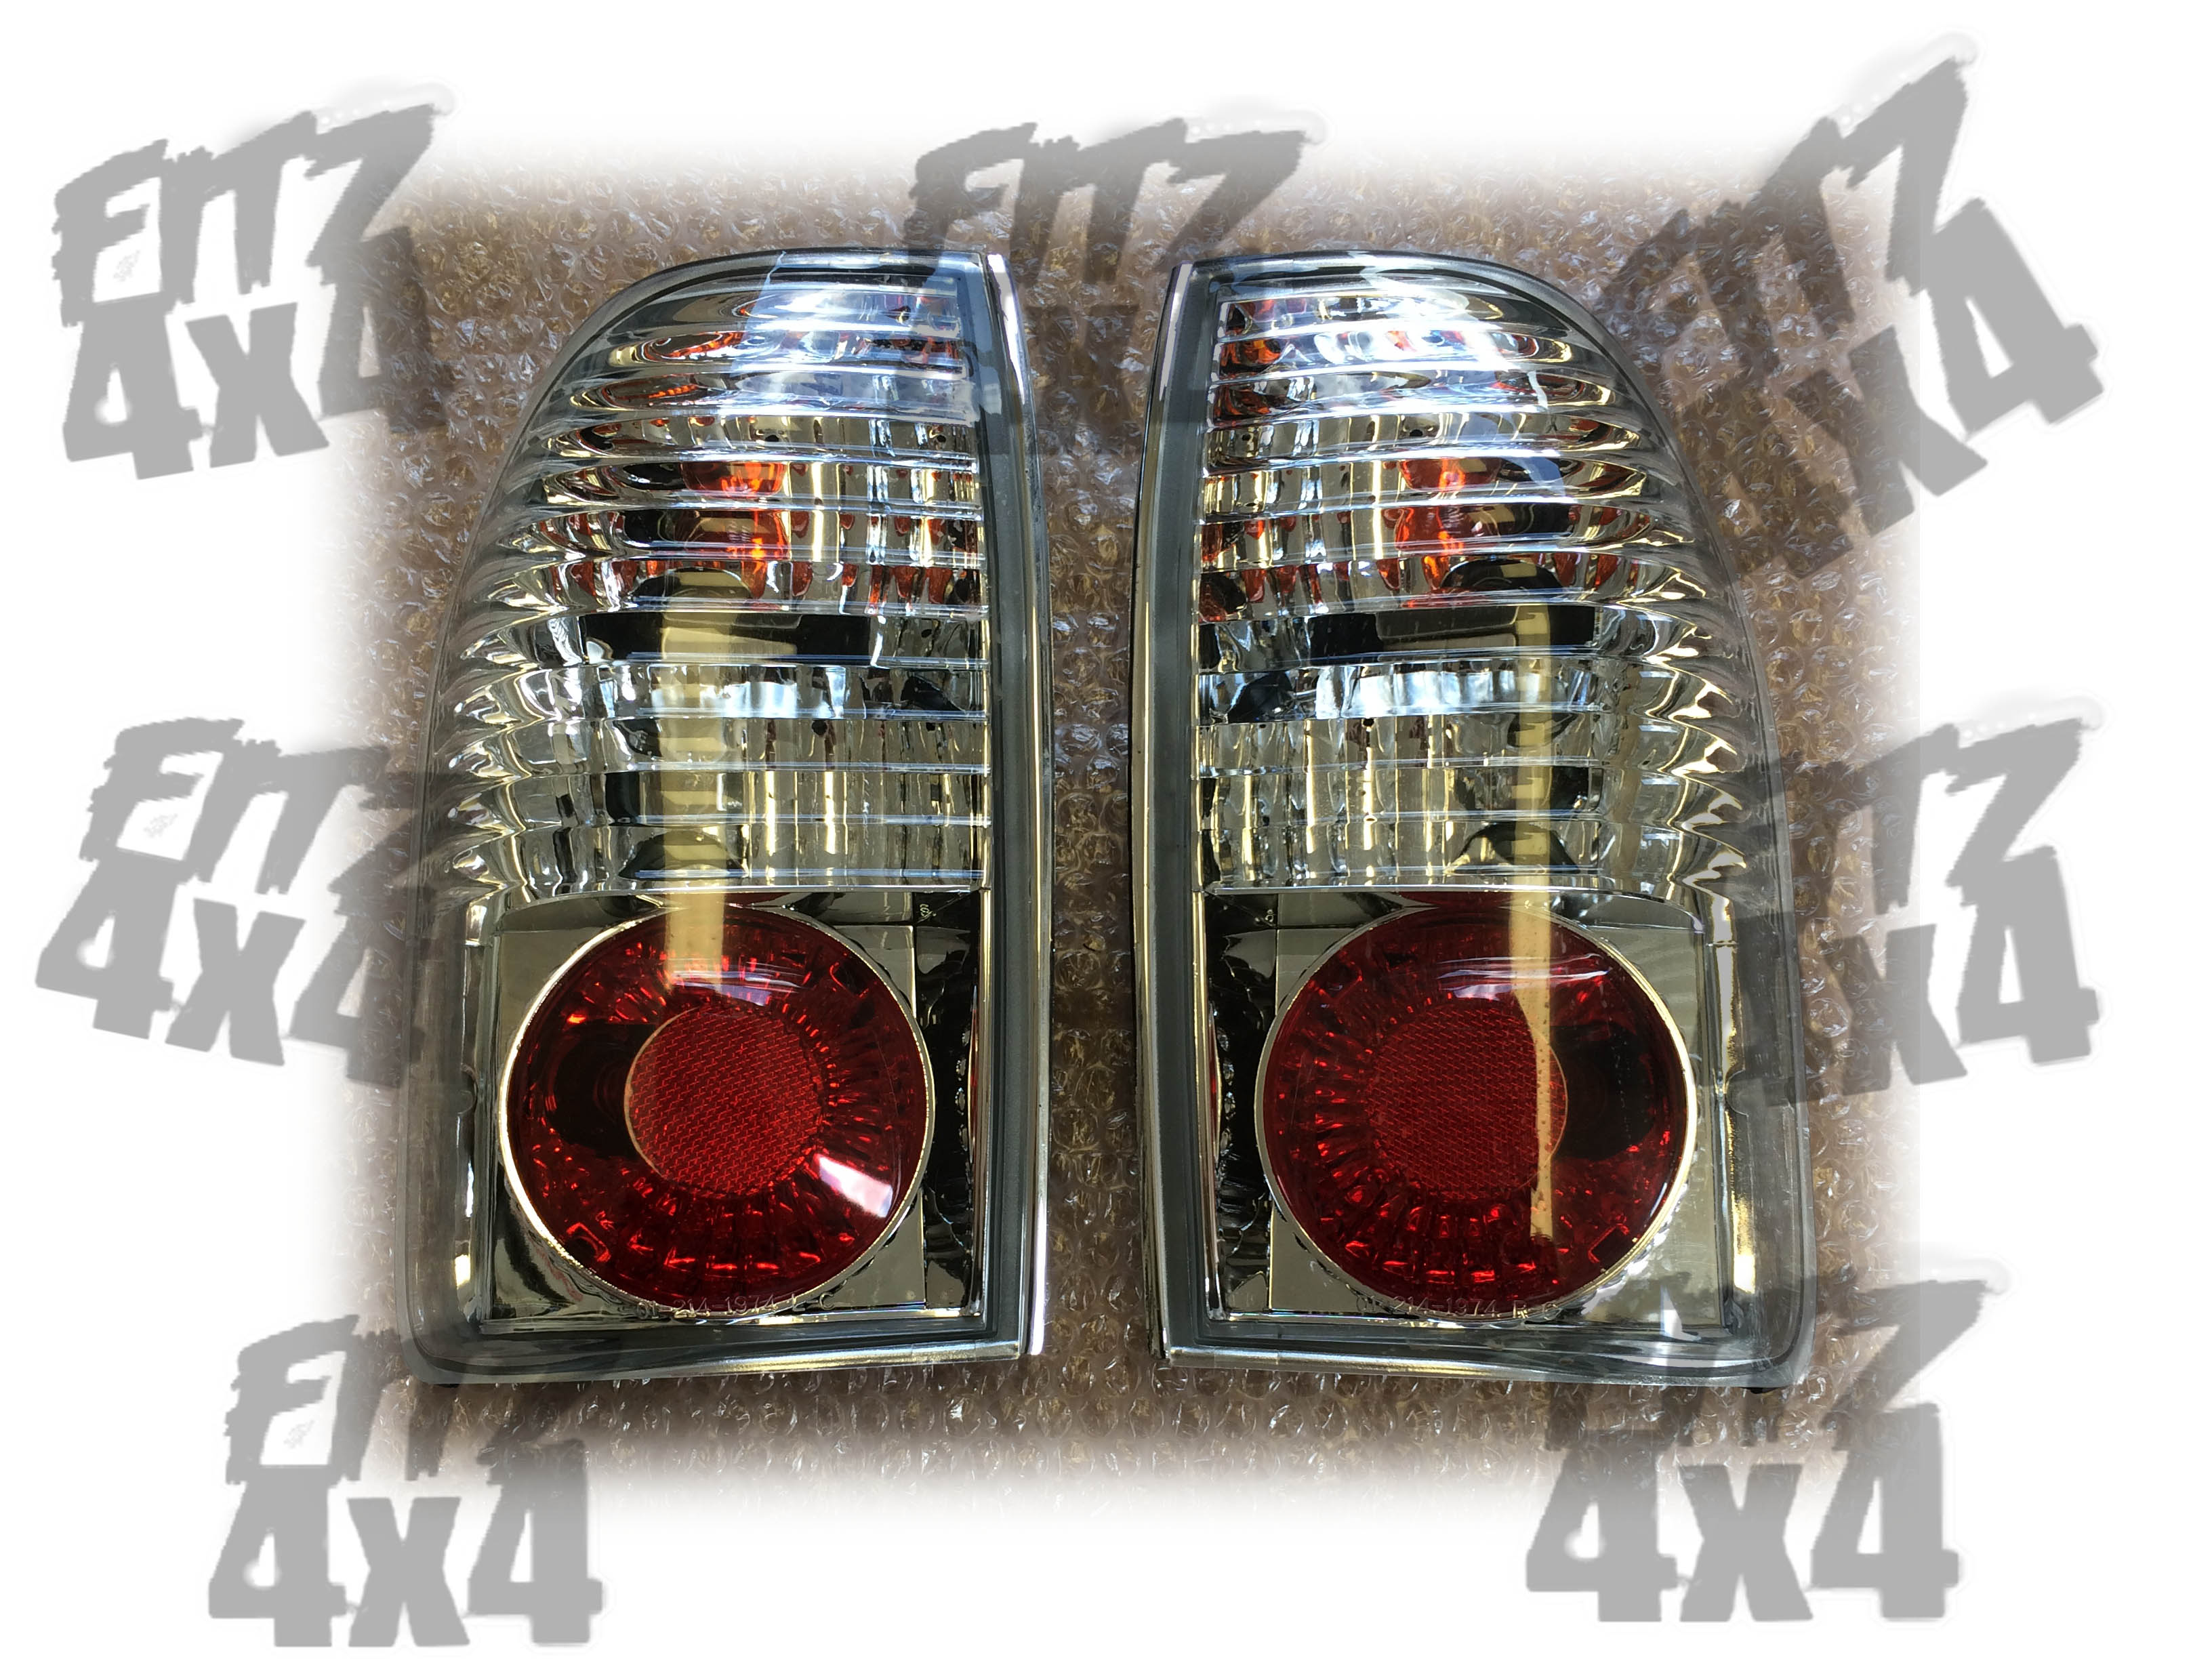 1999-2006 L200 rear tail lights pair